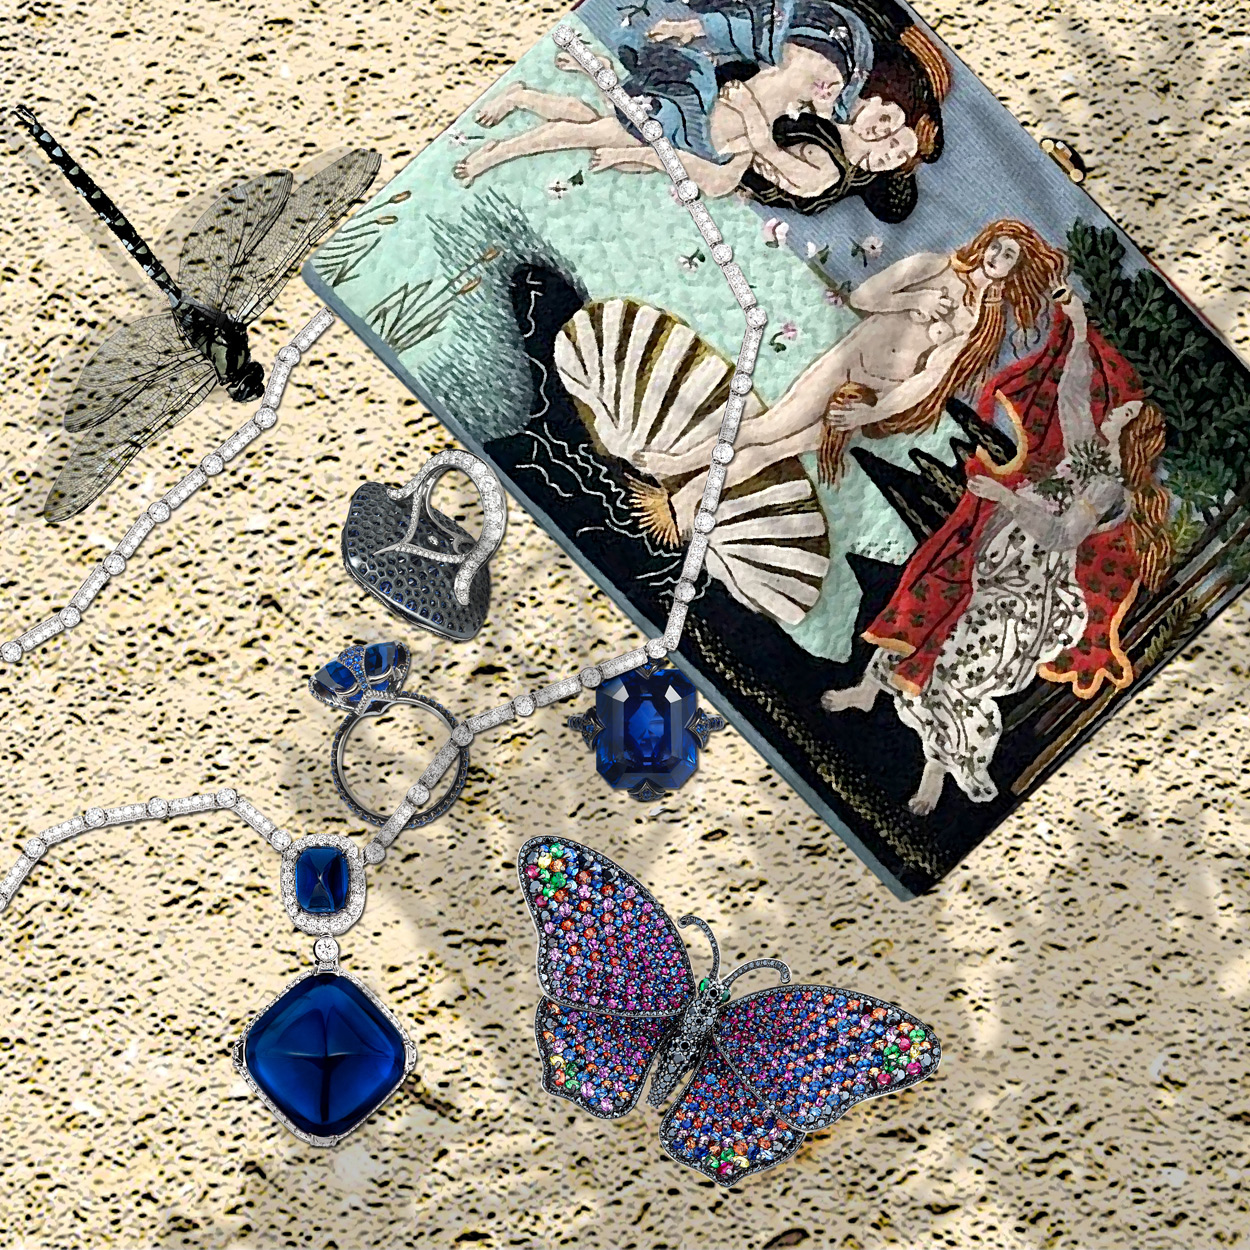 Bayco sapphire and diamond rings and a necklace; Stenzhorn multicoloured gem Butterfly brooch